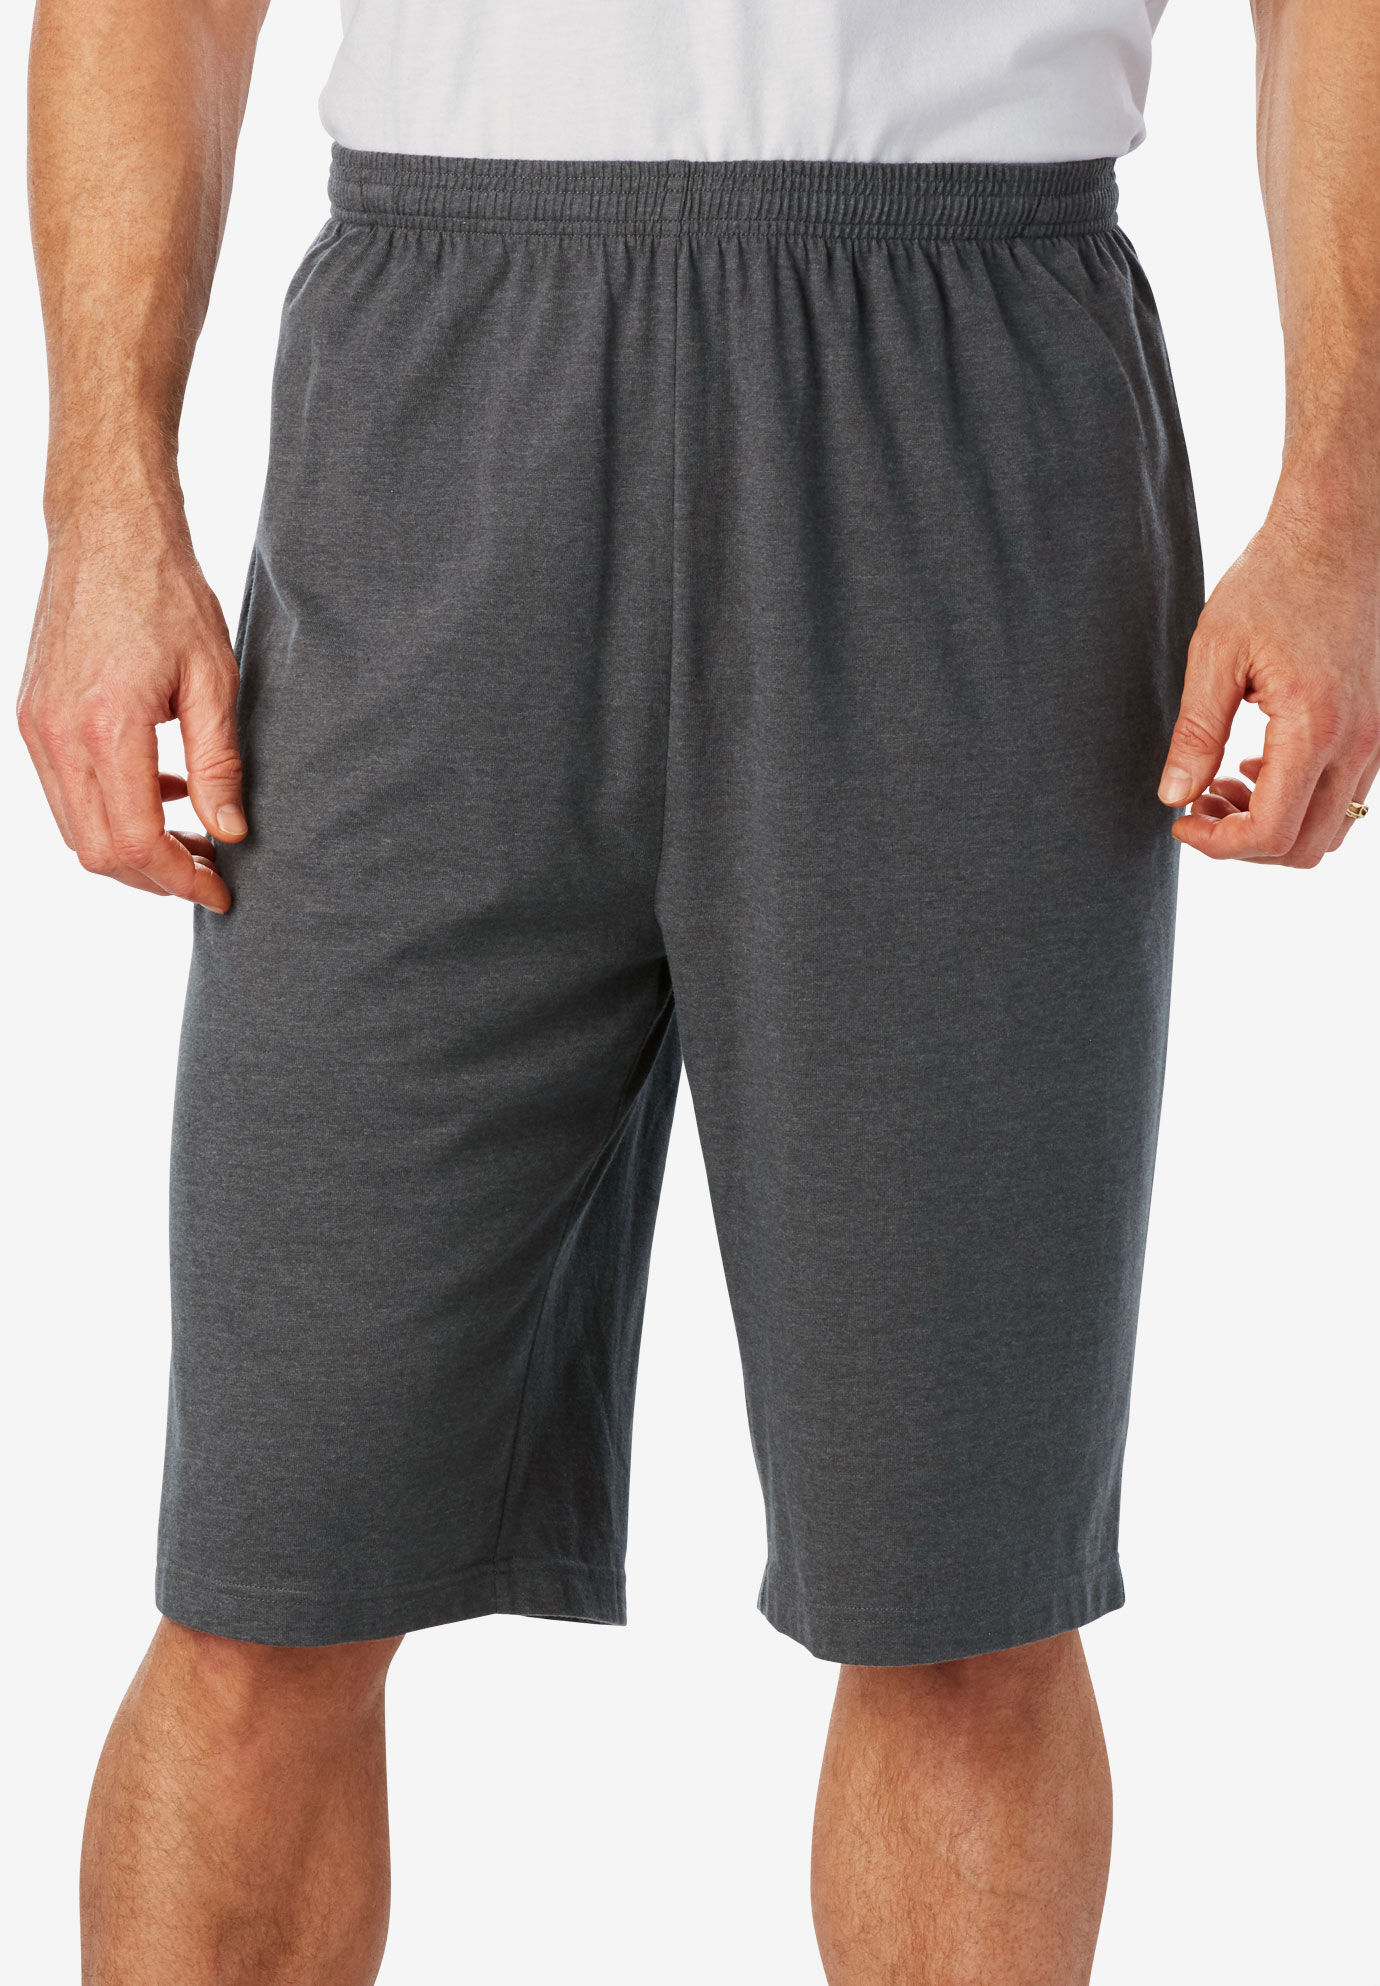 Mens Big & Tall Relaxed Fit Cotton Cargo Shorts KHAKI Waist Size 52